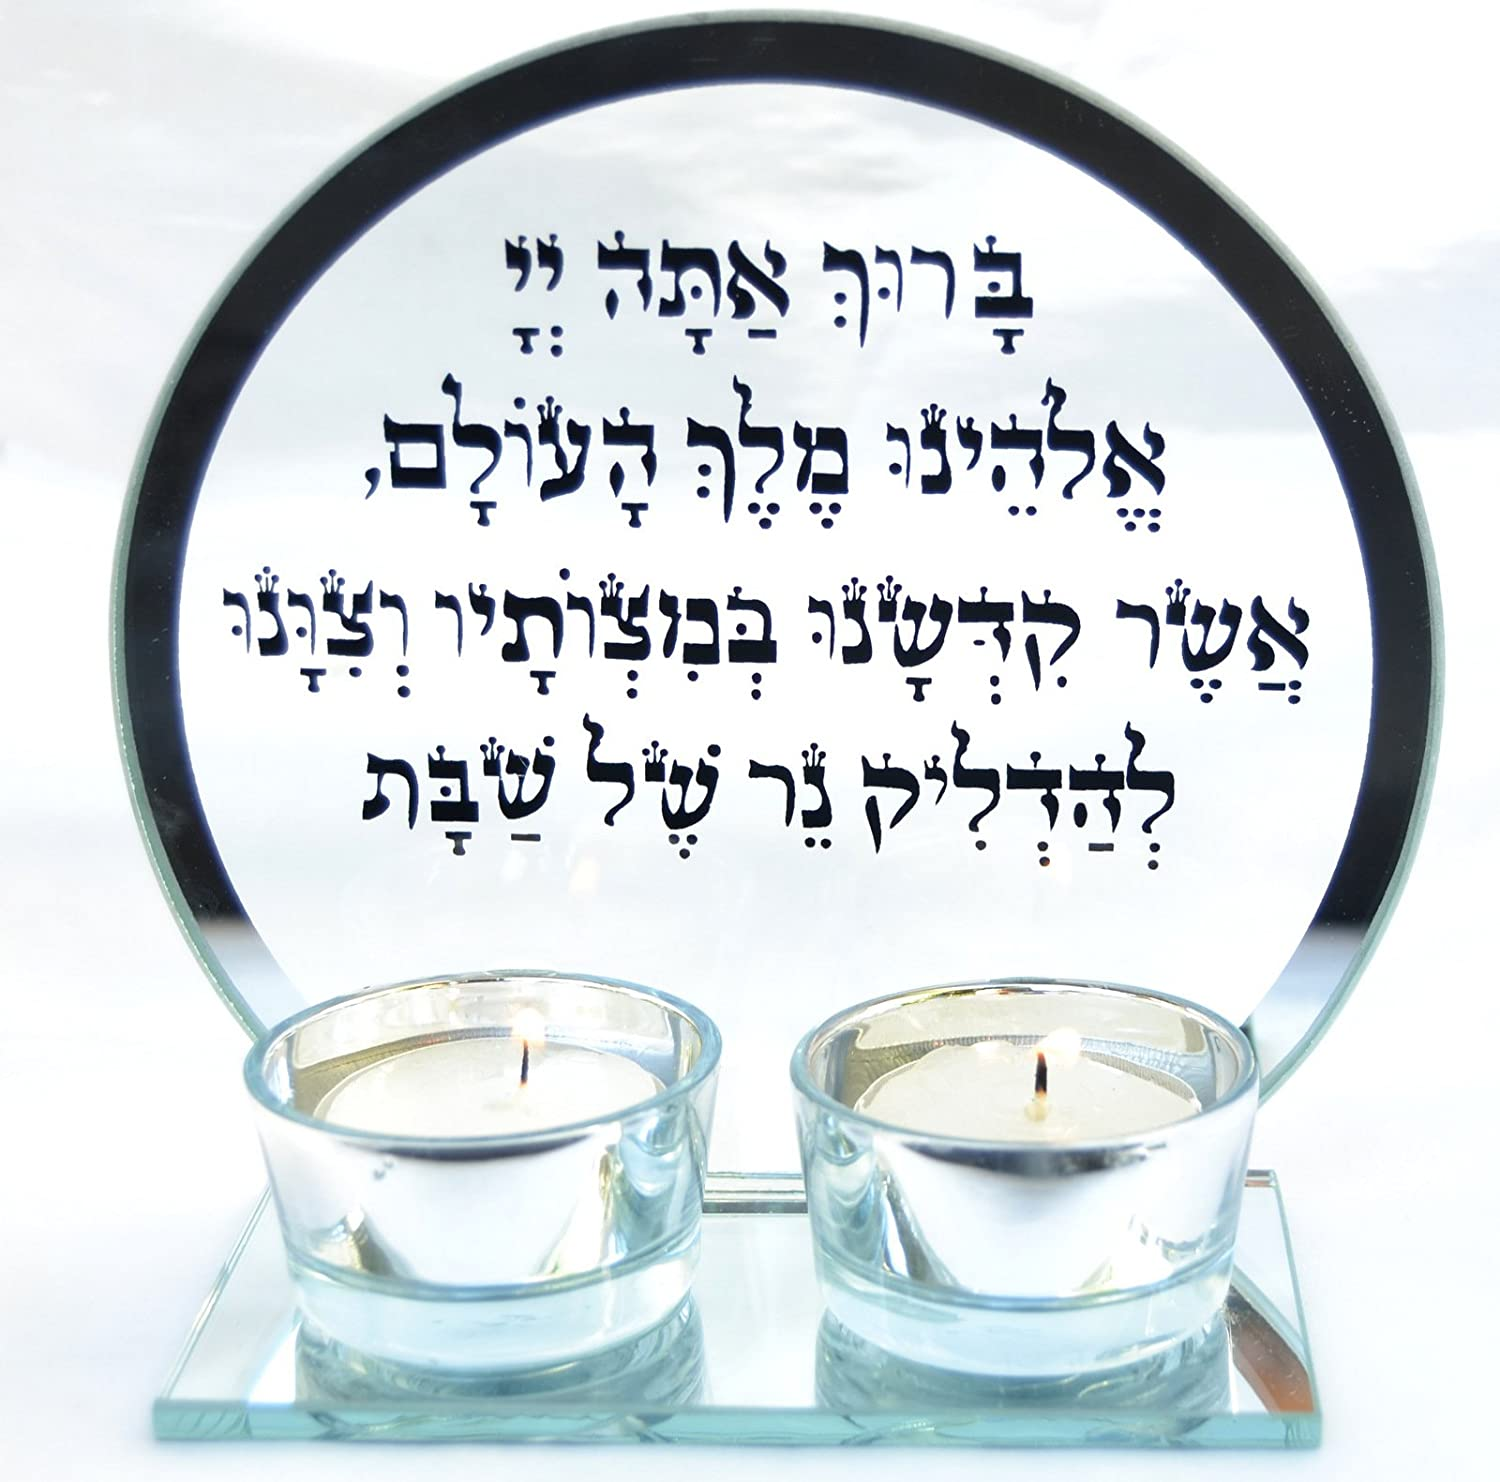 Judaica Fused Glass Shabbat candlesticks Tealight candle holders Made in Israel Jewish gift holiday candles Home Decor gift